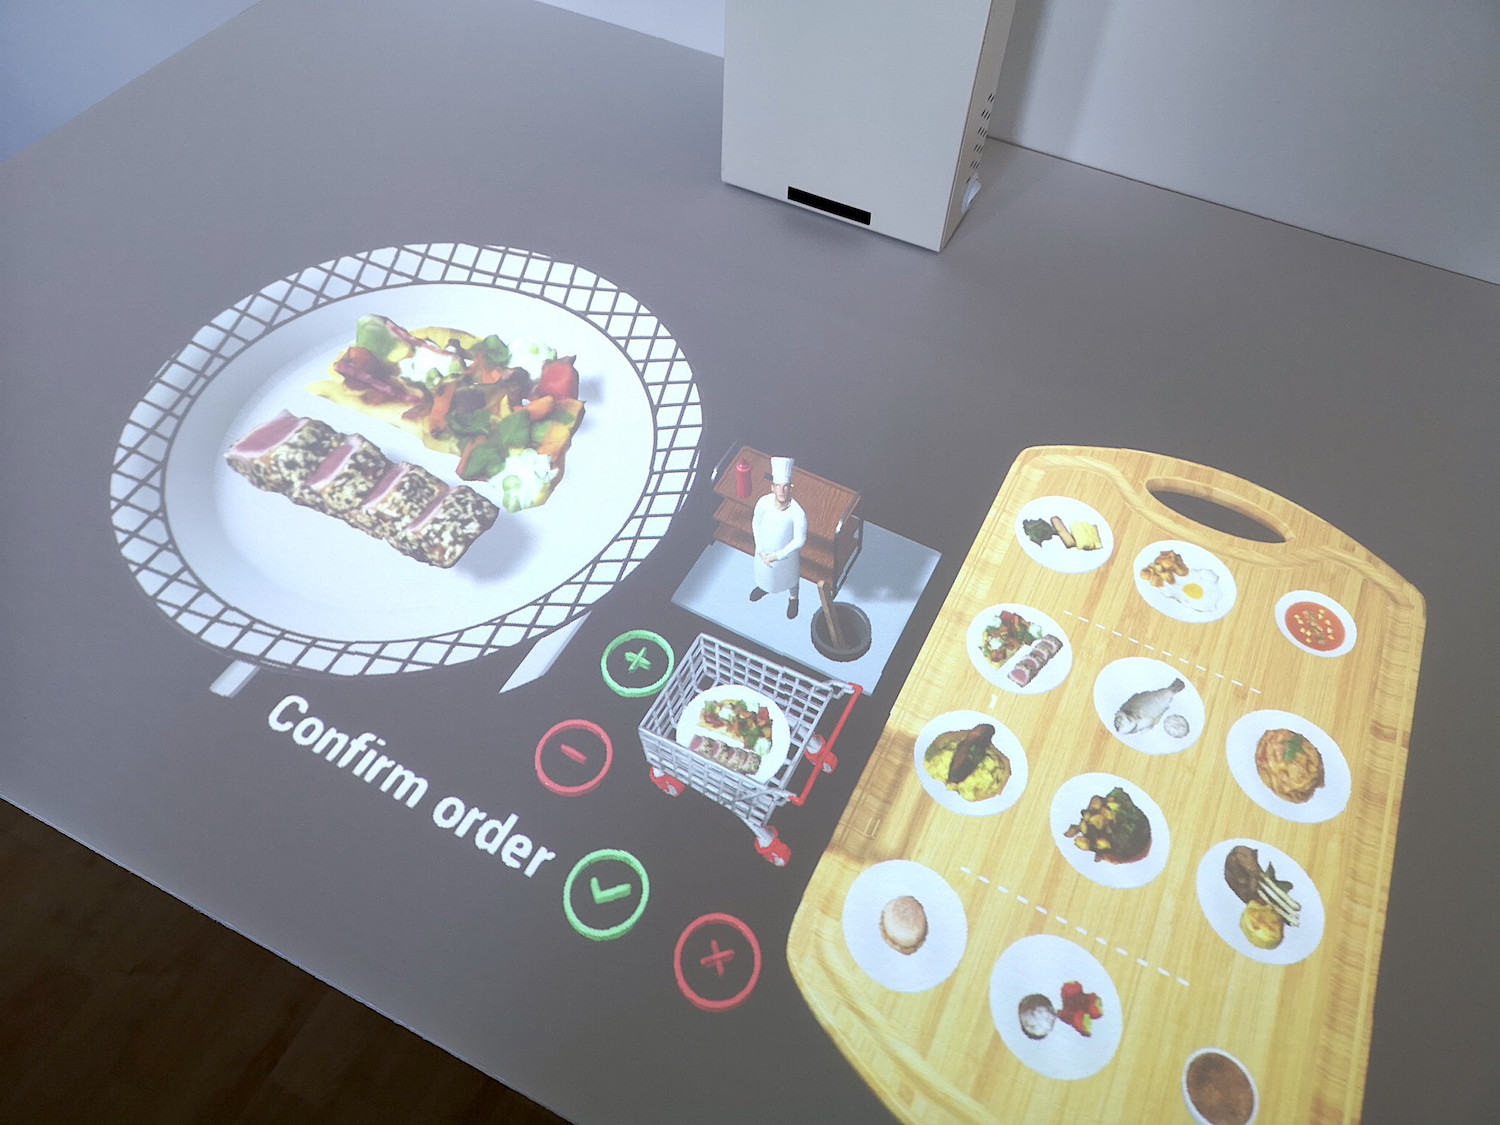 Tabletop POS system - The guest places the order from his place in full autonomy at any time of the meal. The AR lamp sends the order information to the restaurant kitchen.